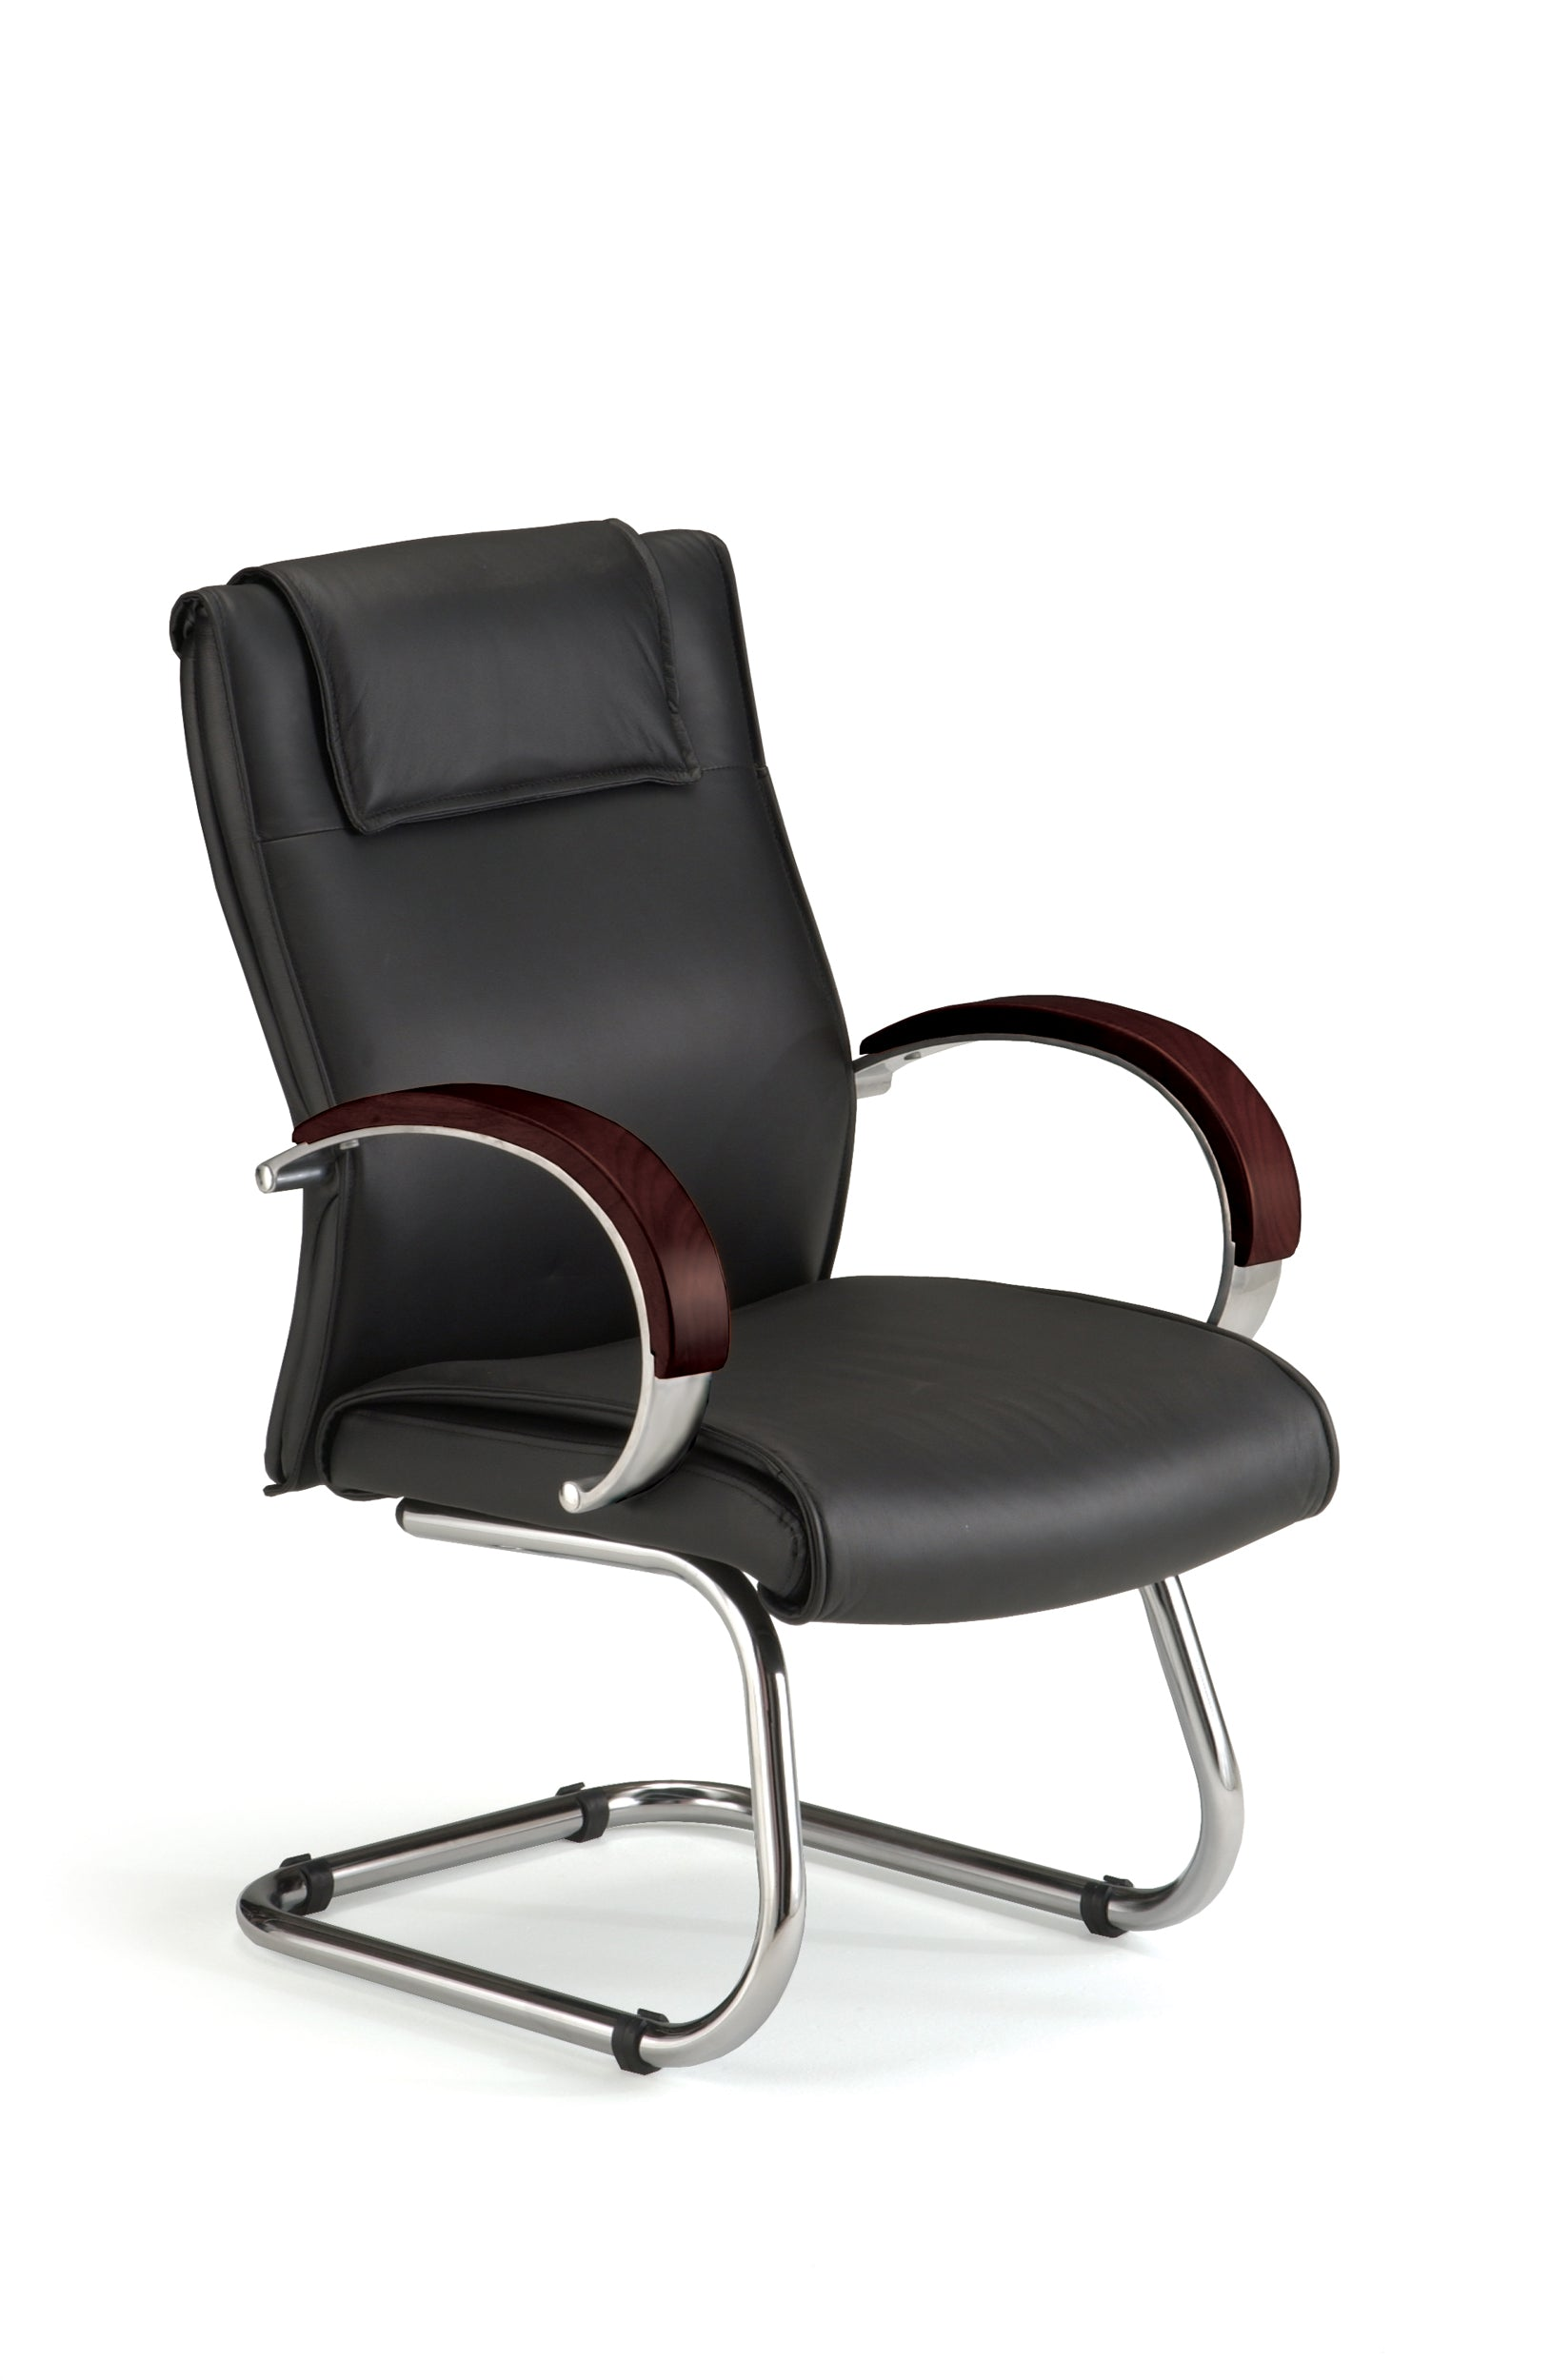 Model 565-L Apex Series Leather Executive Reception / Guest Chair